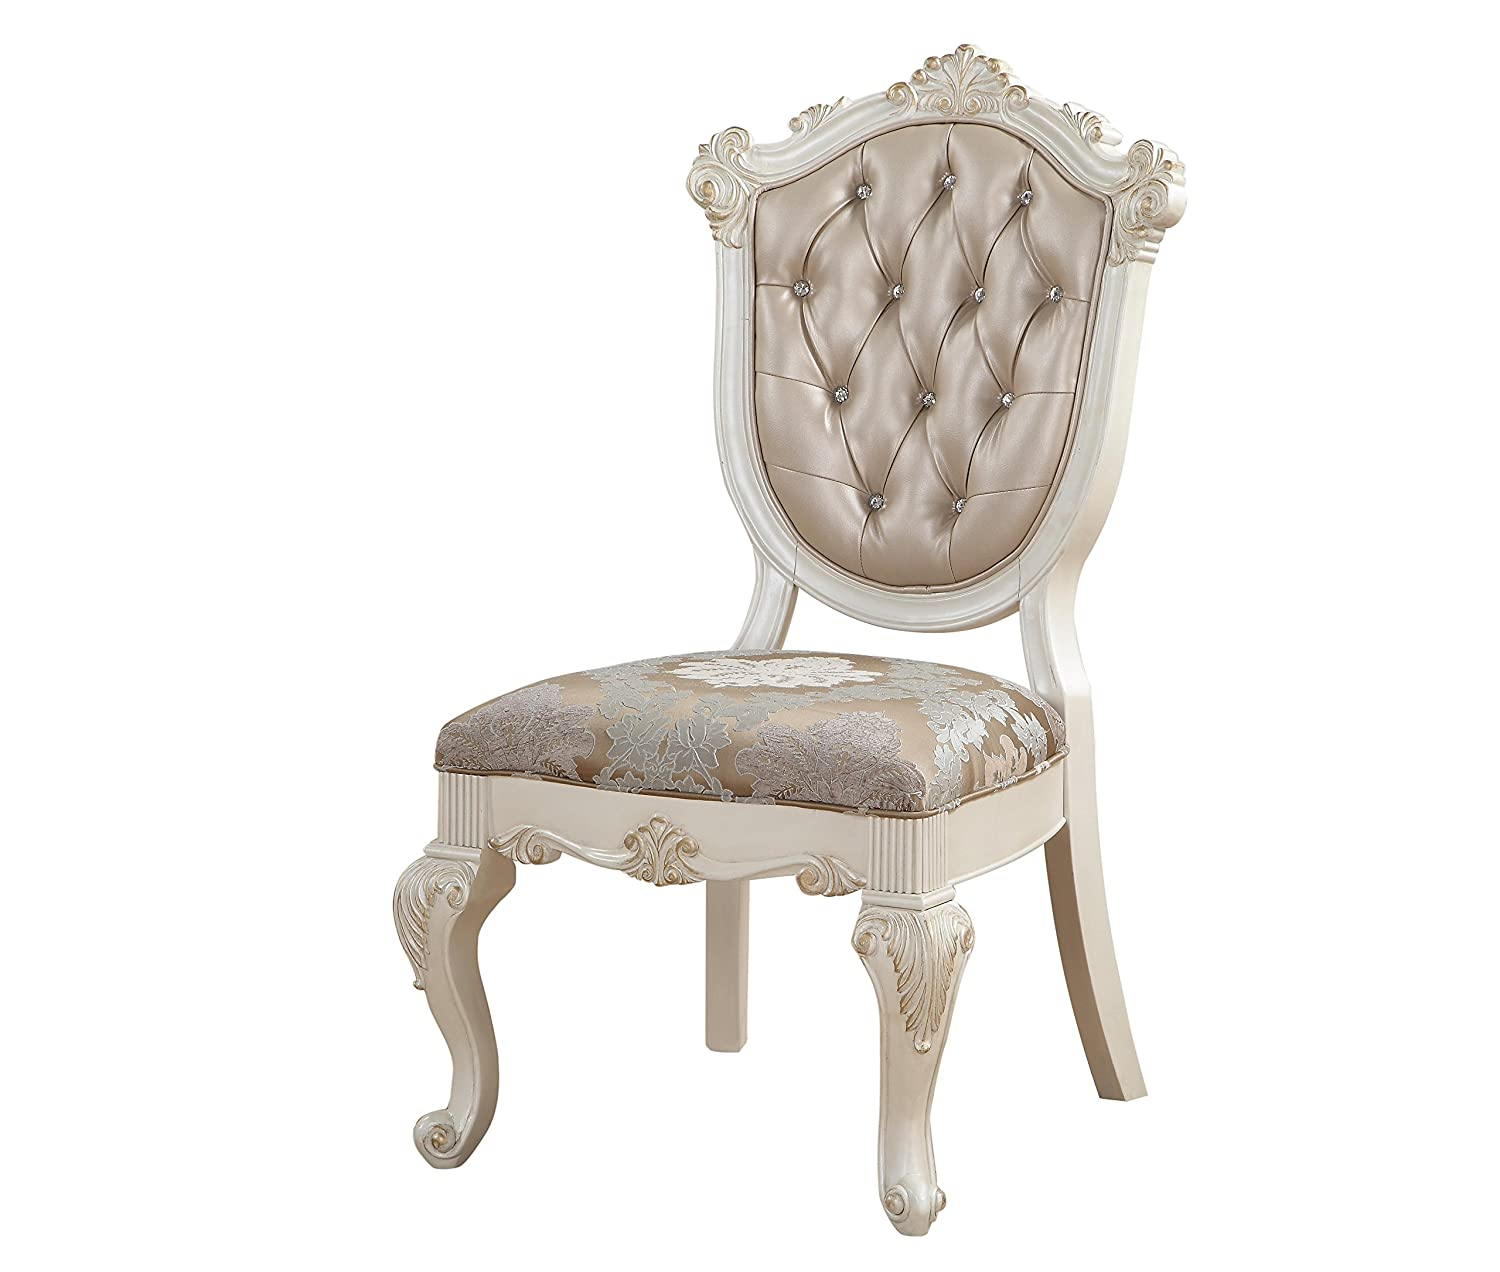 ACME Furniture Dining Chair, Rose Gold PU & Pearl White